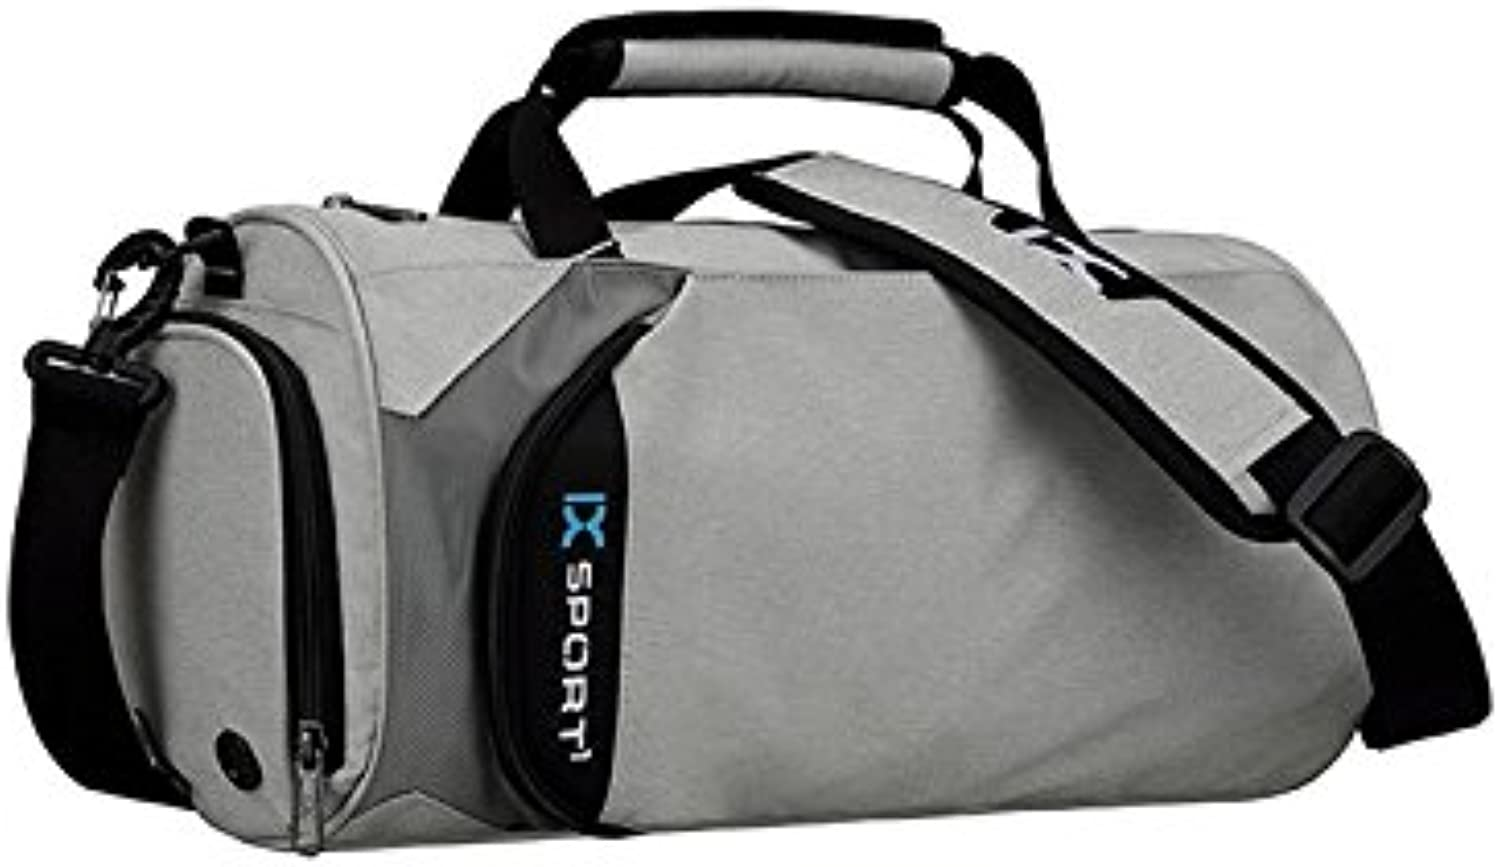 Backpacks Outdoor Large Capacity Gym Bag Sports Holdall Travel Weekender Duffel Bag for Men and Women(Light Grey) Vellhater